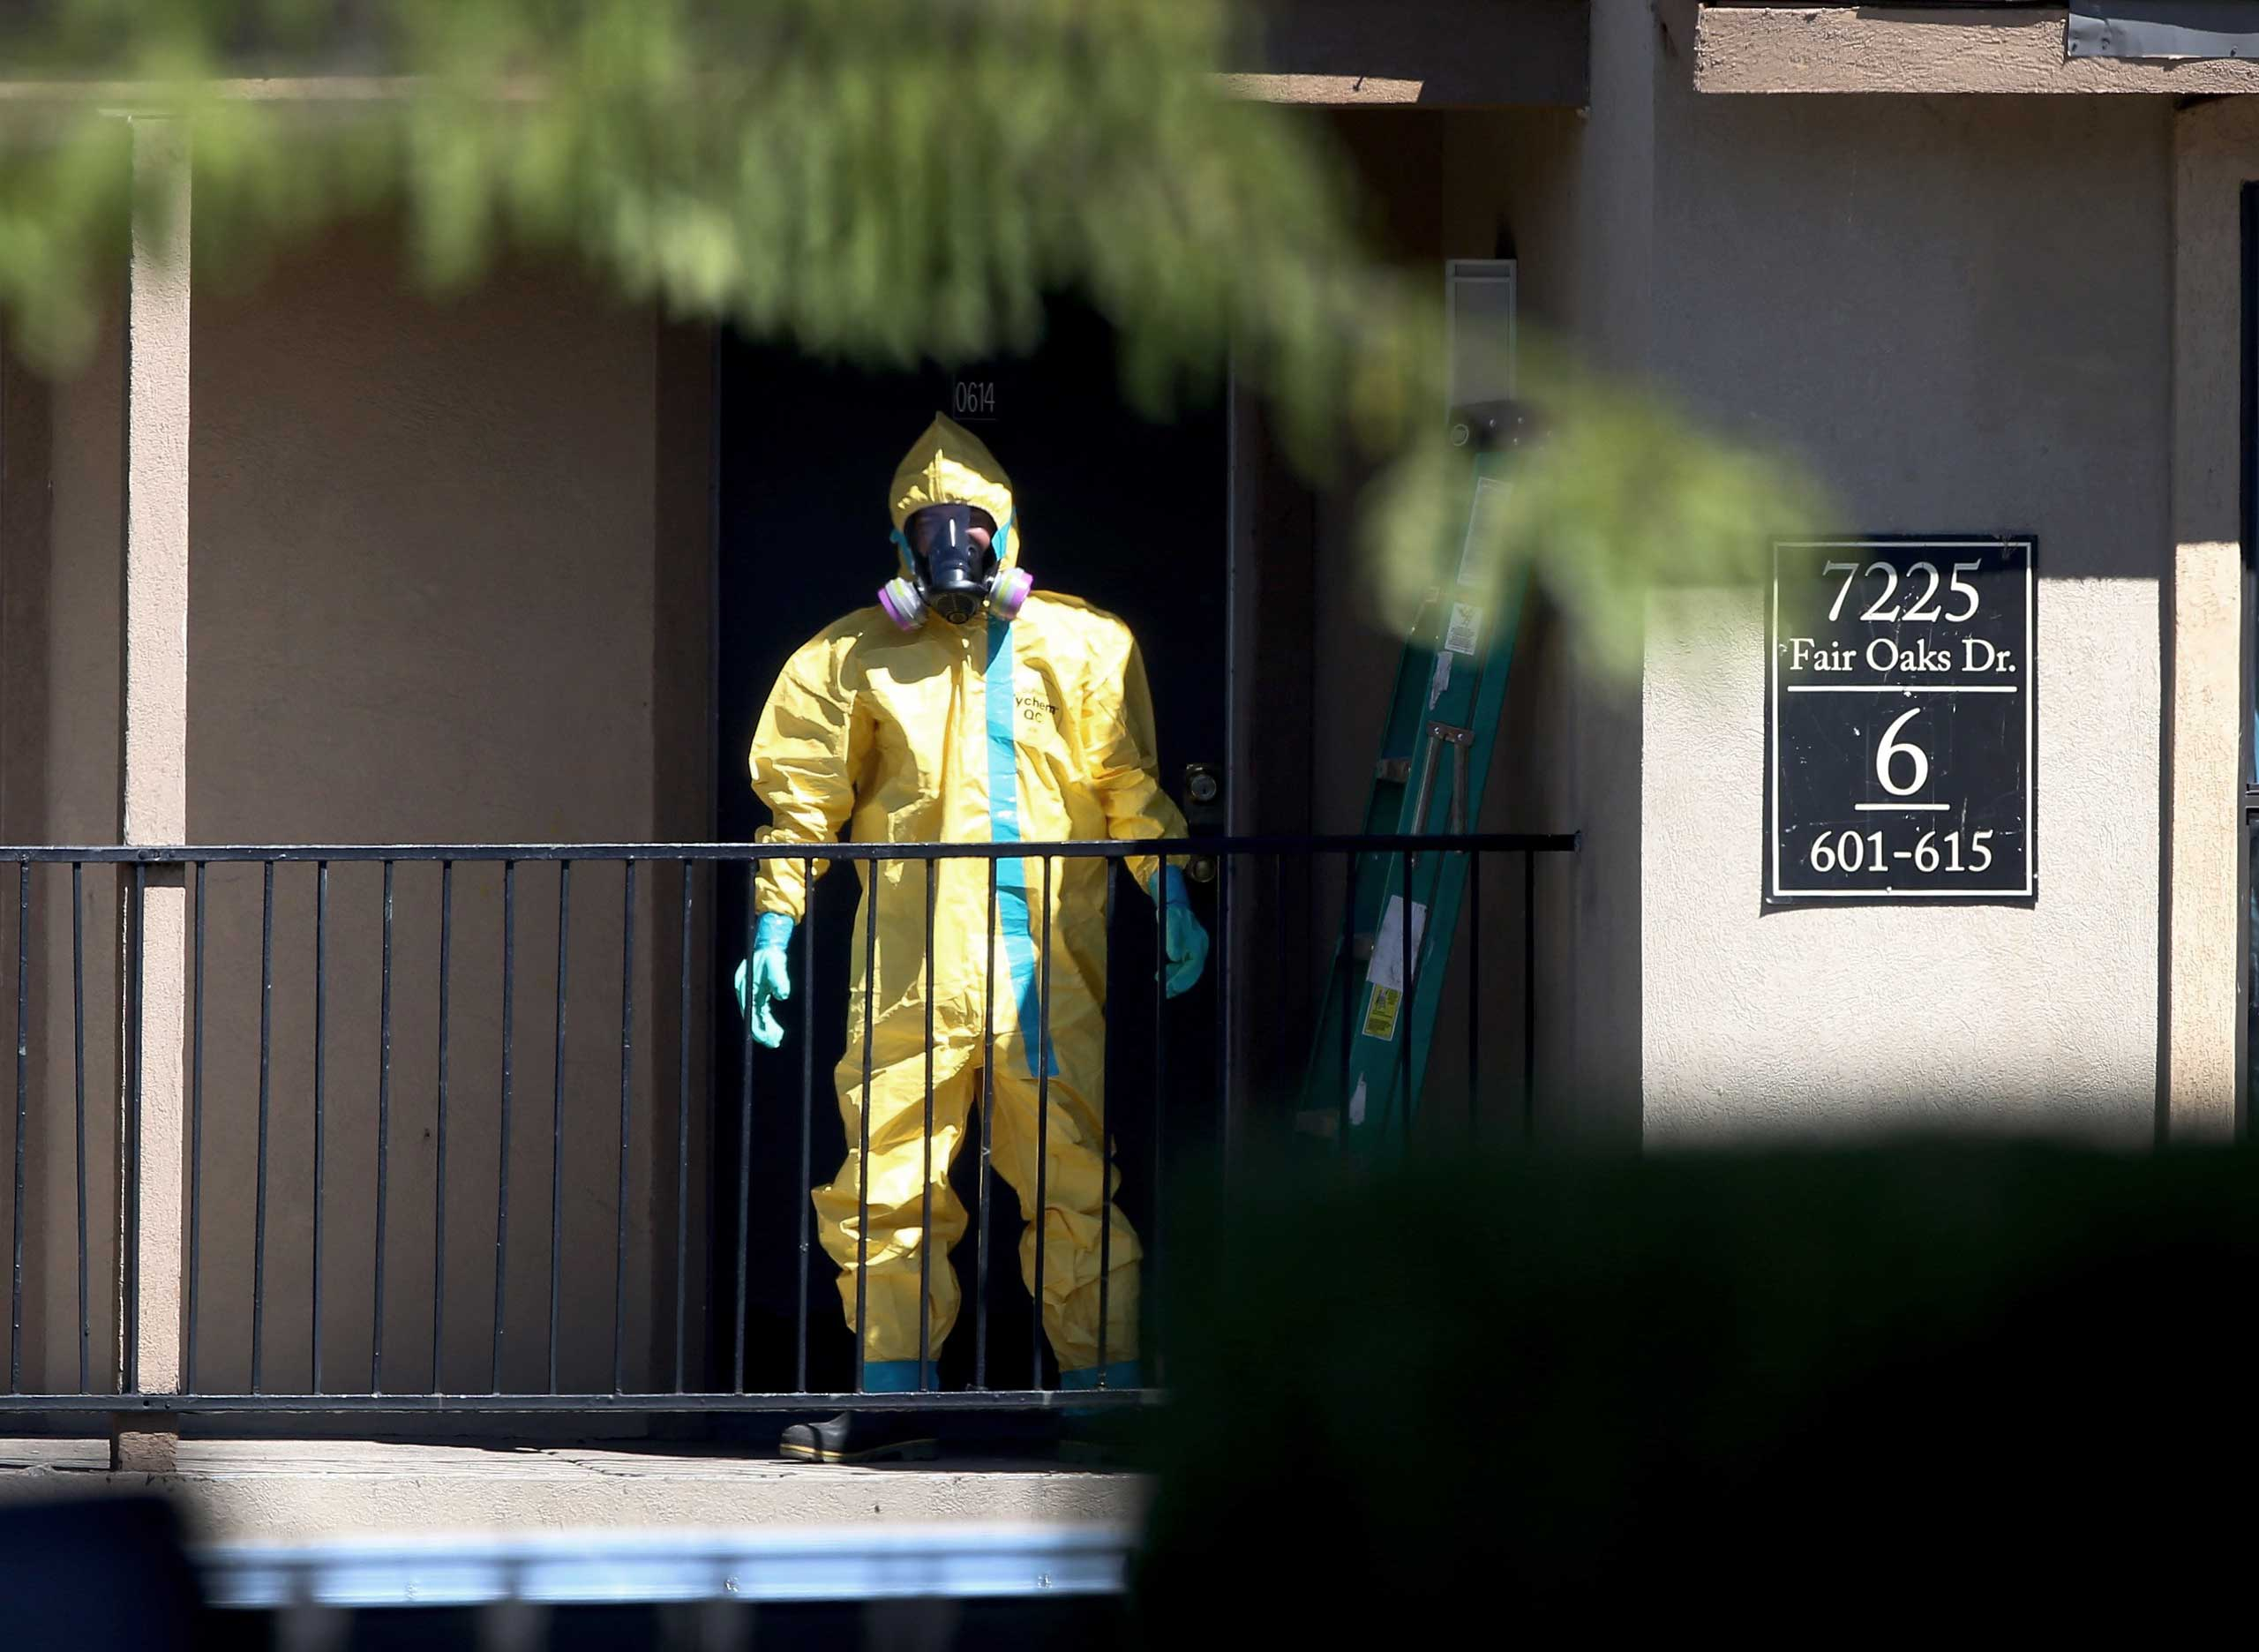 A hazmat team member arrives to clean a unit at the Ivy Apartments, where the confirmed Ebola virus patient was staying, on Oct. 3, 2014 in Dallas, Texas.